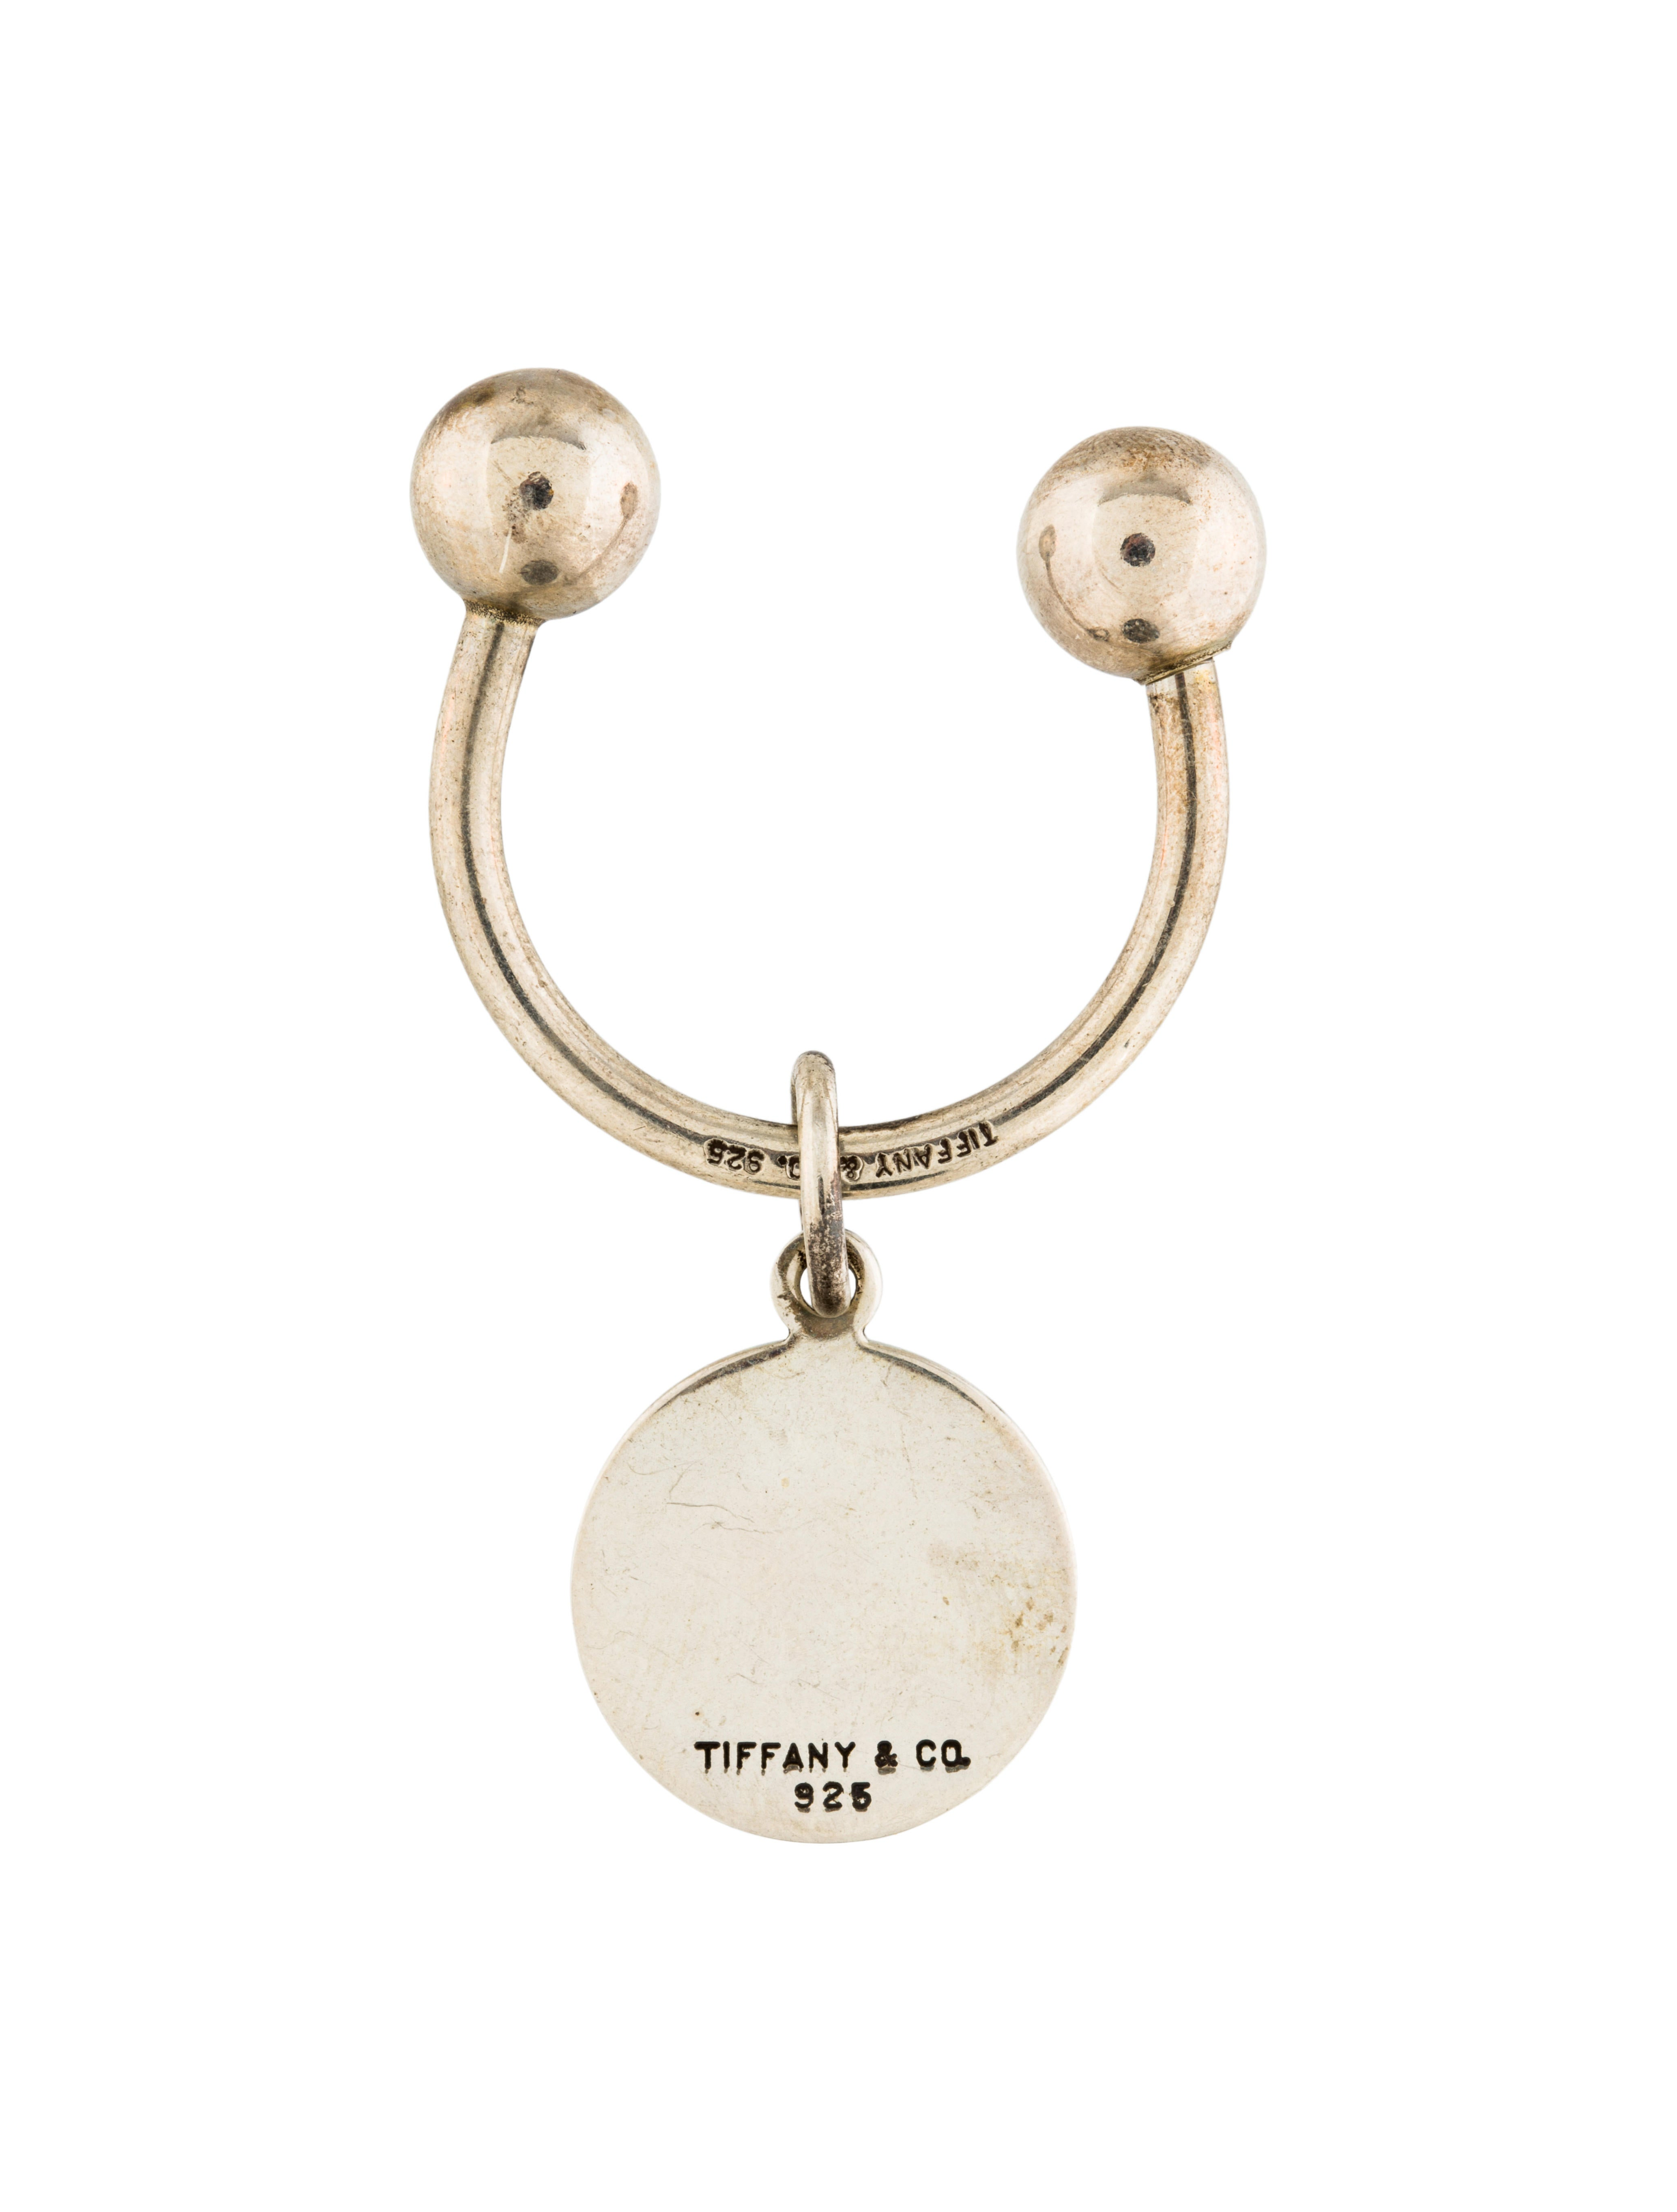 co sterling silver key ring accessories